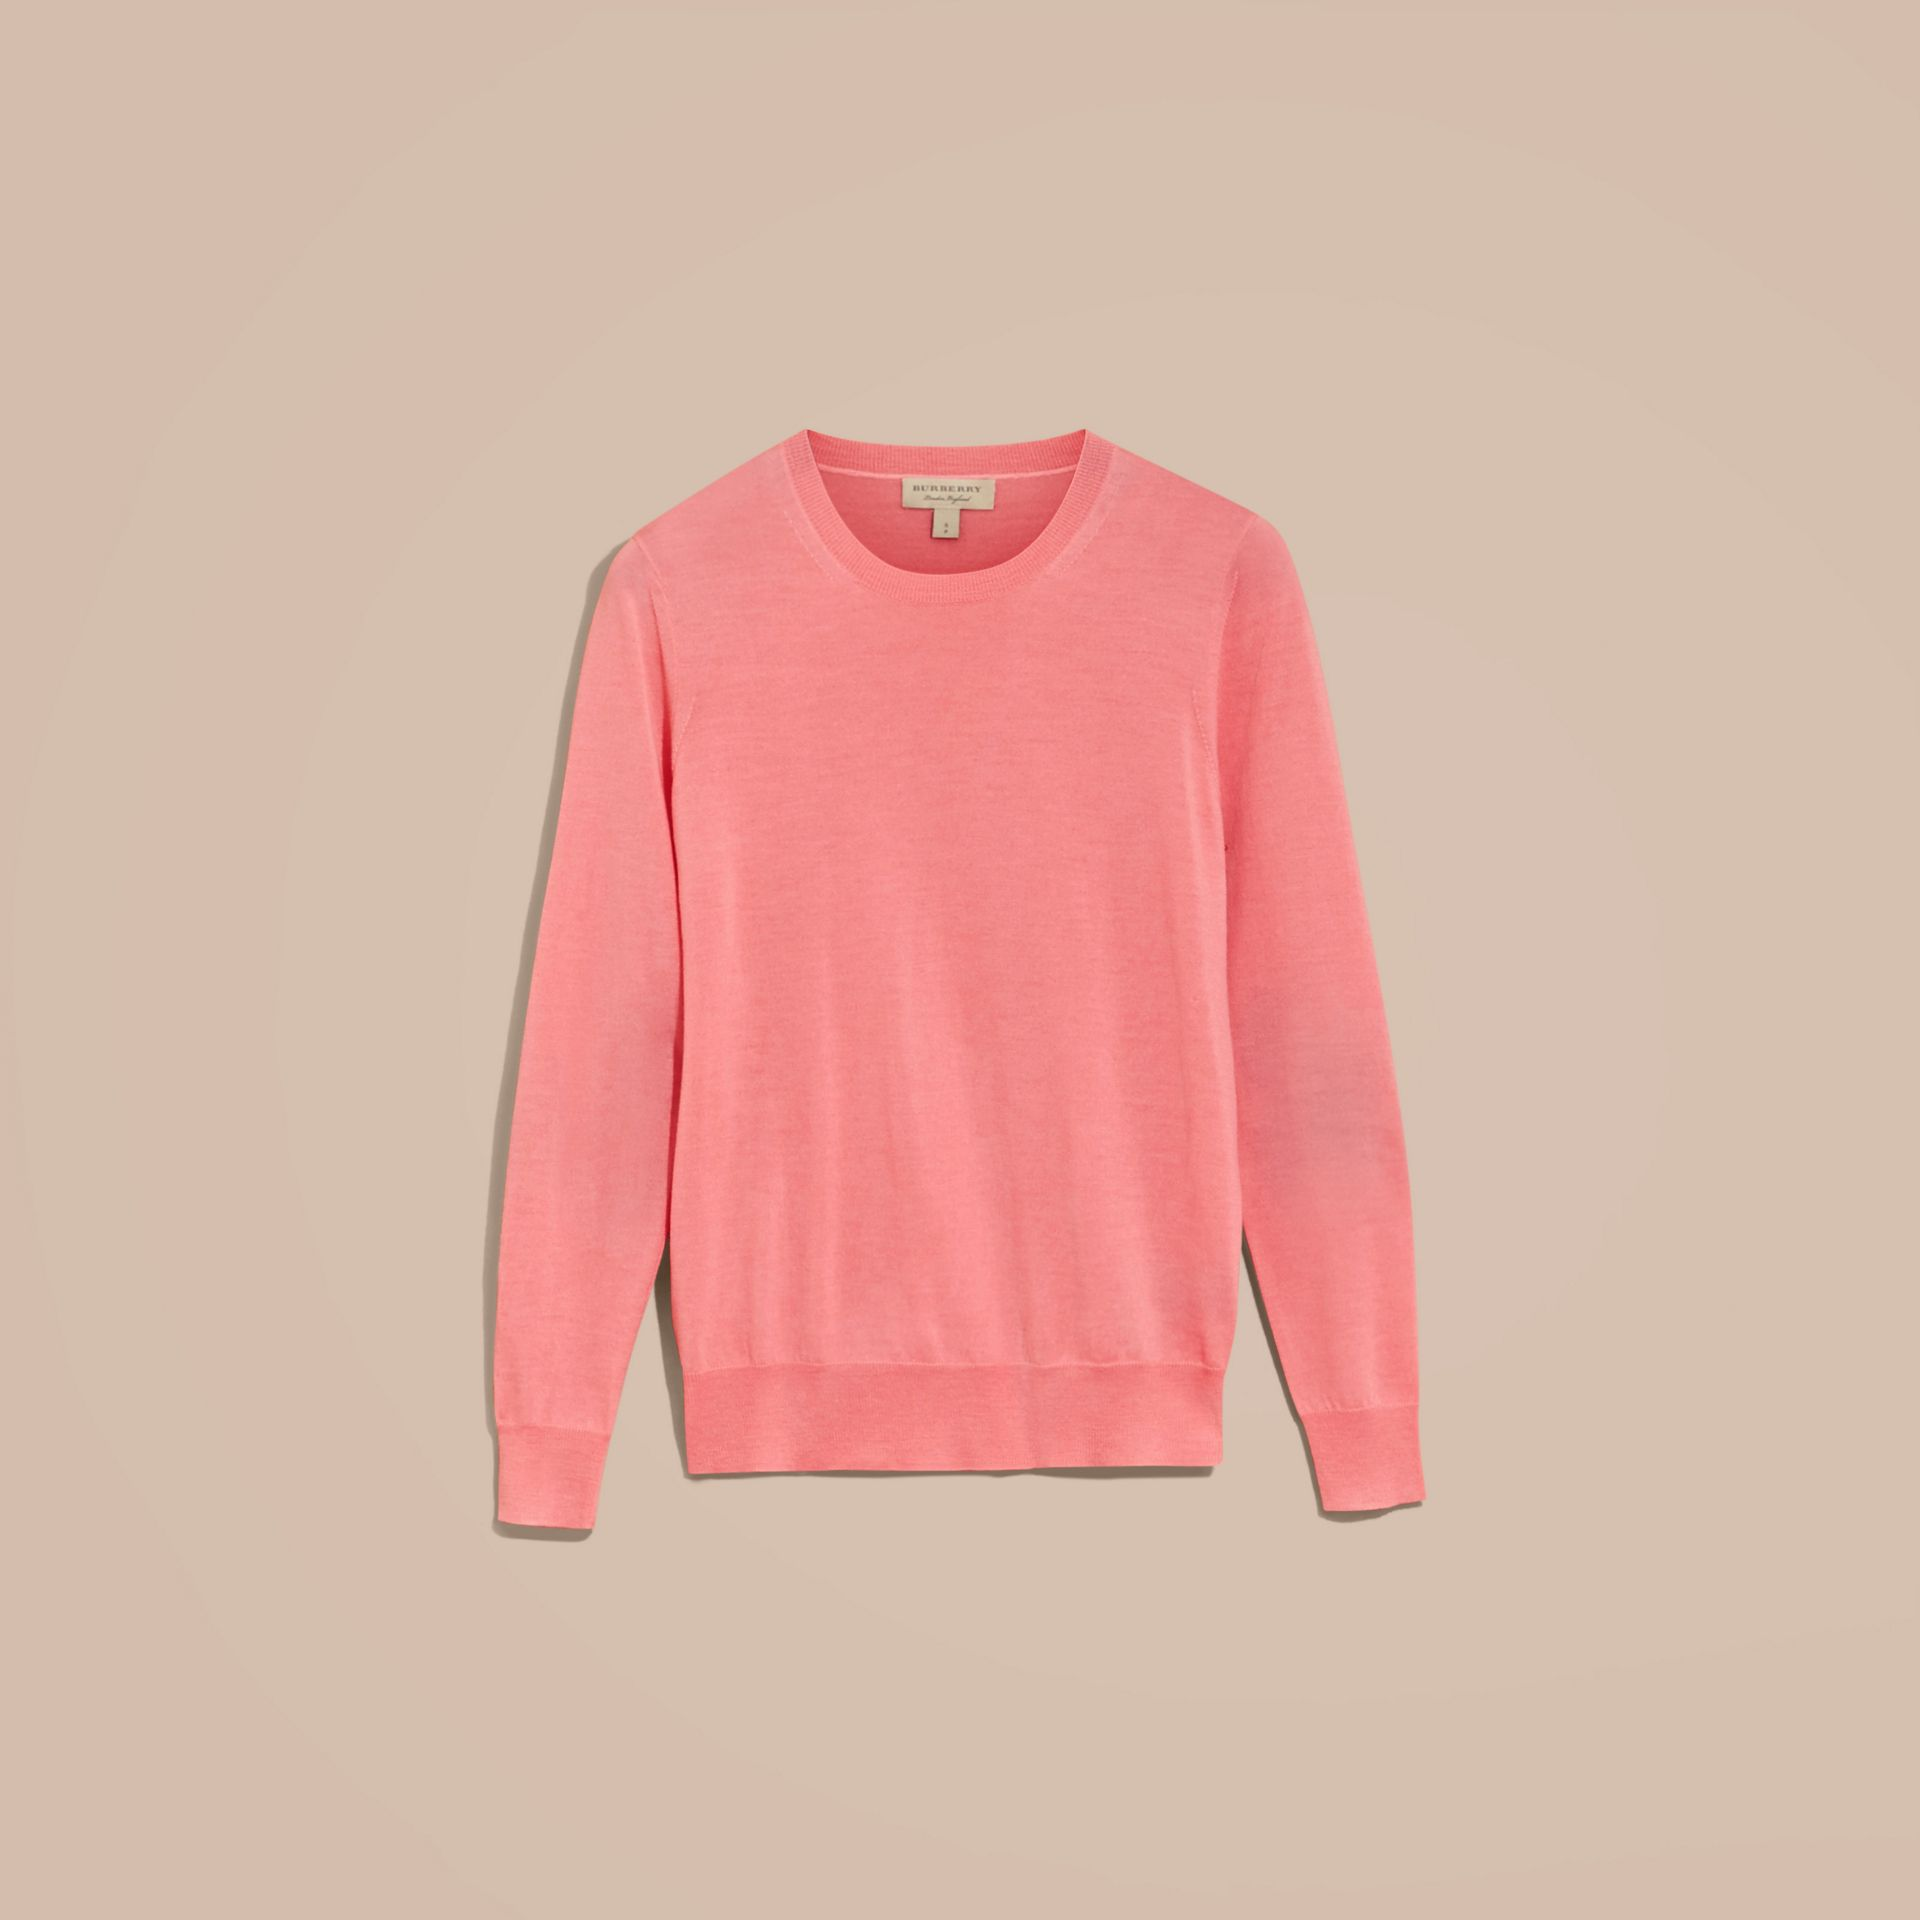 Pale rose pink Check Detail Merino Crew Neck Sweater Pale Rose Pink - gallery image 4